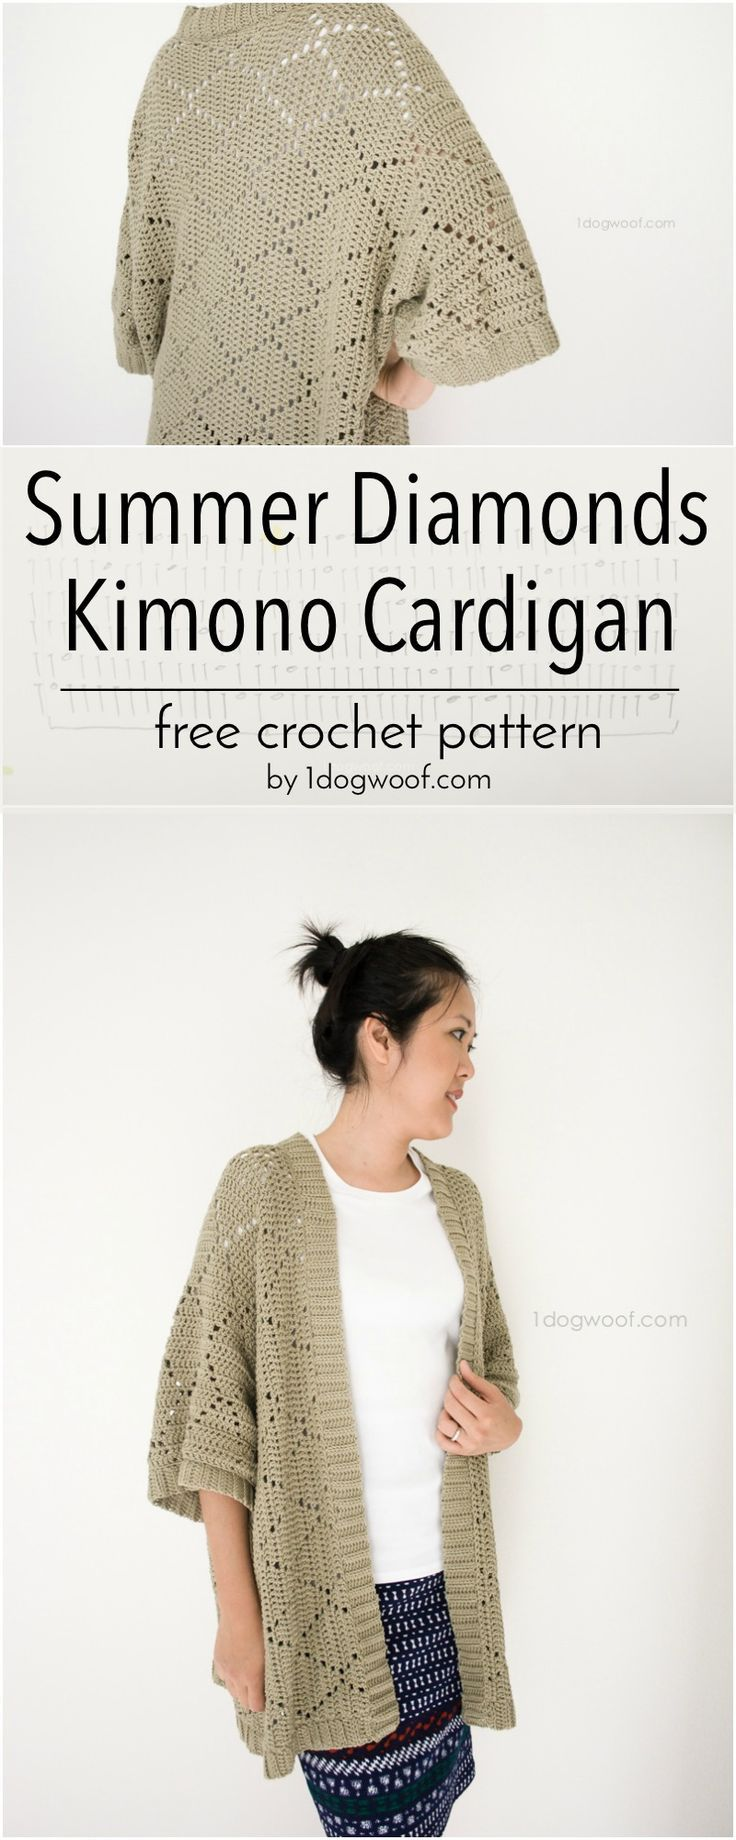 Summer Diamonds Kimono Cardigan | Free crochet, Crochet and Diamond